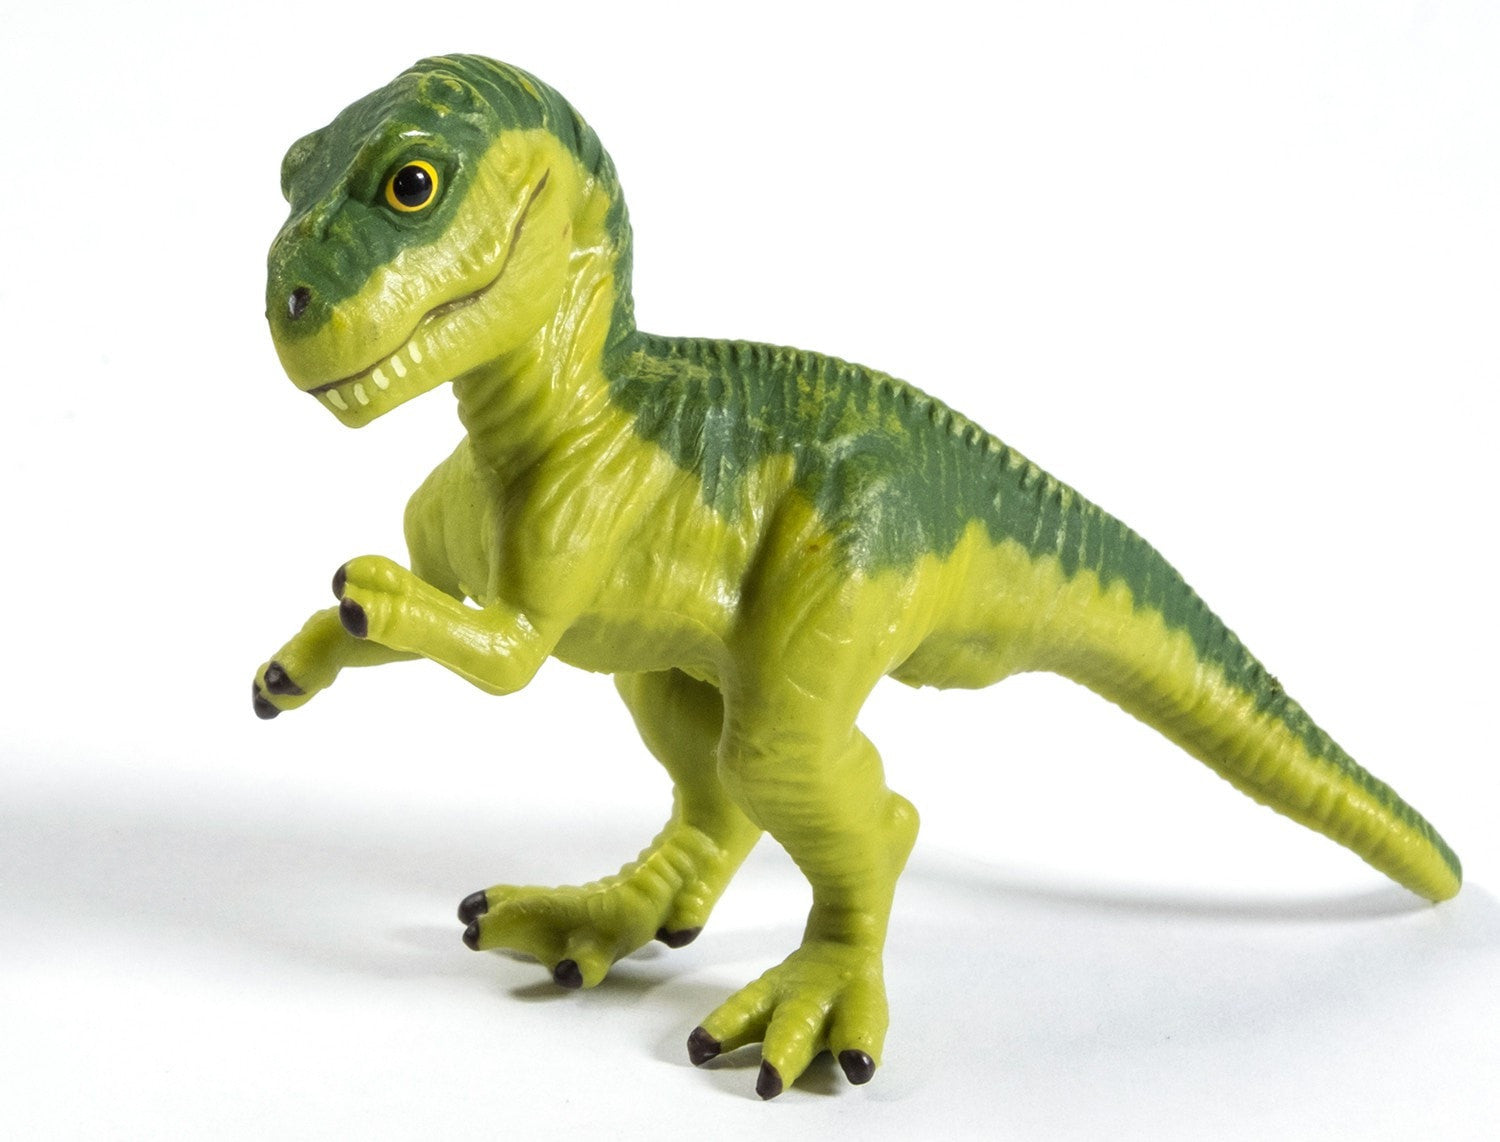 Baby tyrannosaurus rex figure by safari ltd toy box gifts wonder baby tyrannosaurus rex figure by safari ltd altavistaventures